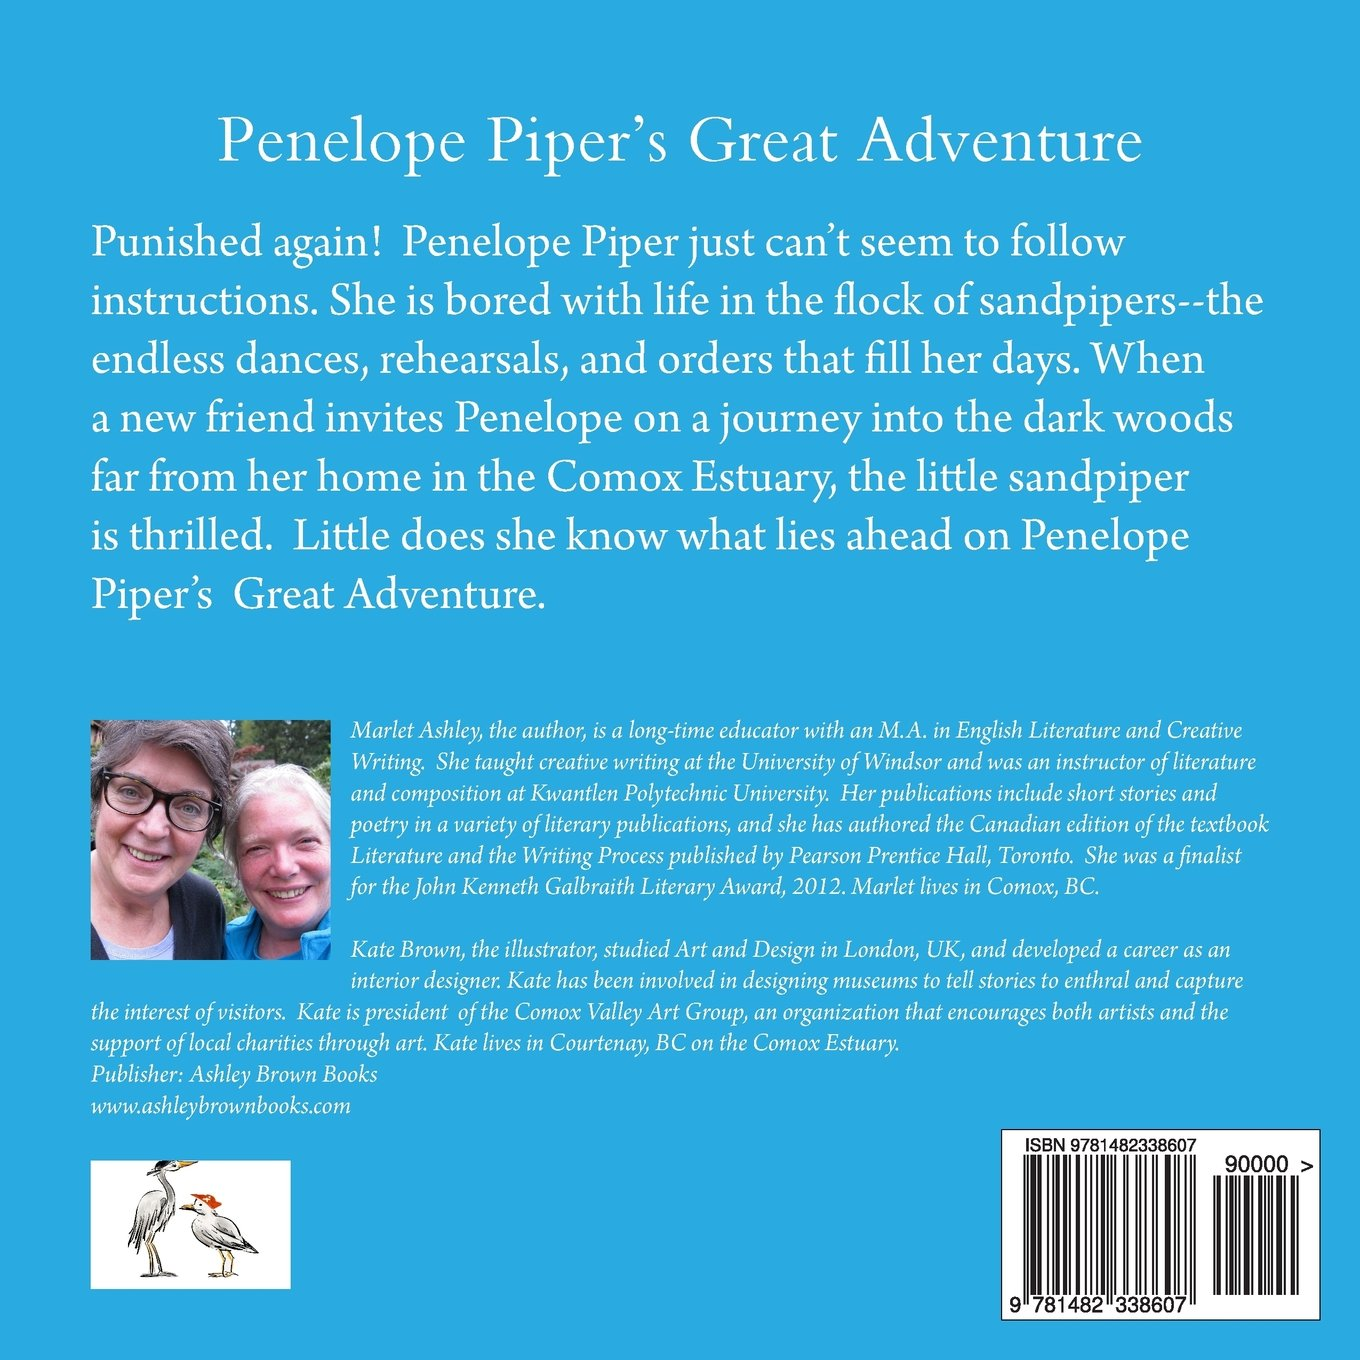 Penelope Pipers Great Adventure When Seashore Creatures Meet Revelry On The Estuary Marlet Ashley Kate Brown 9781482338607 Amazon Com Books